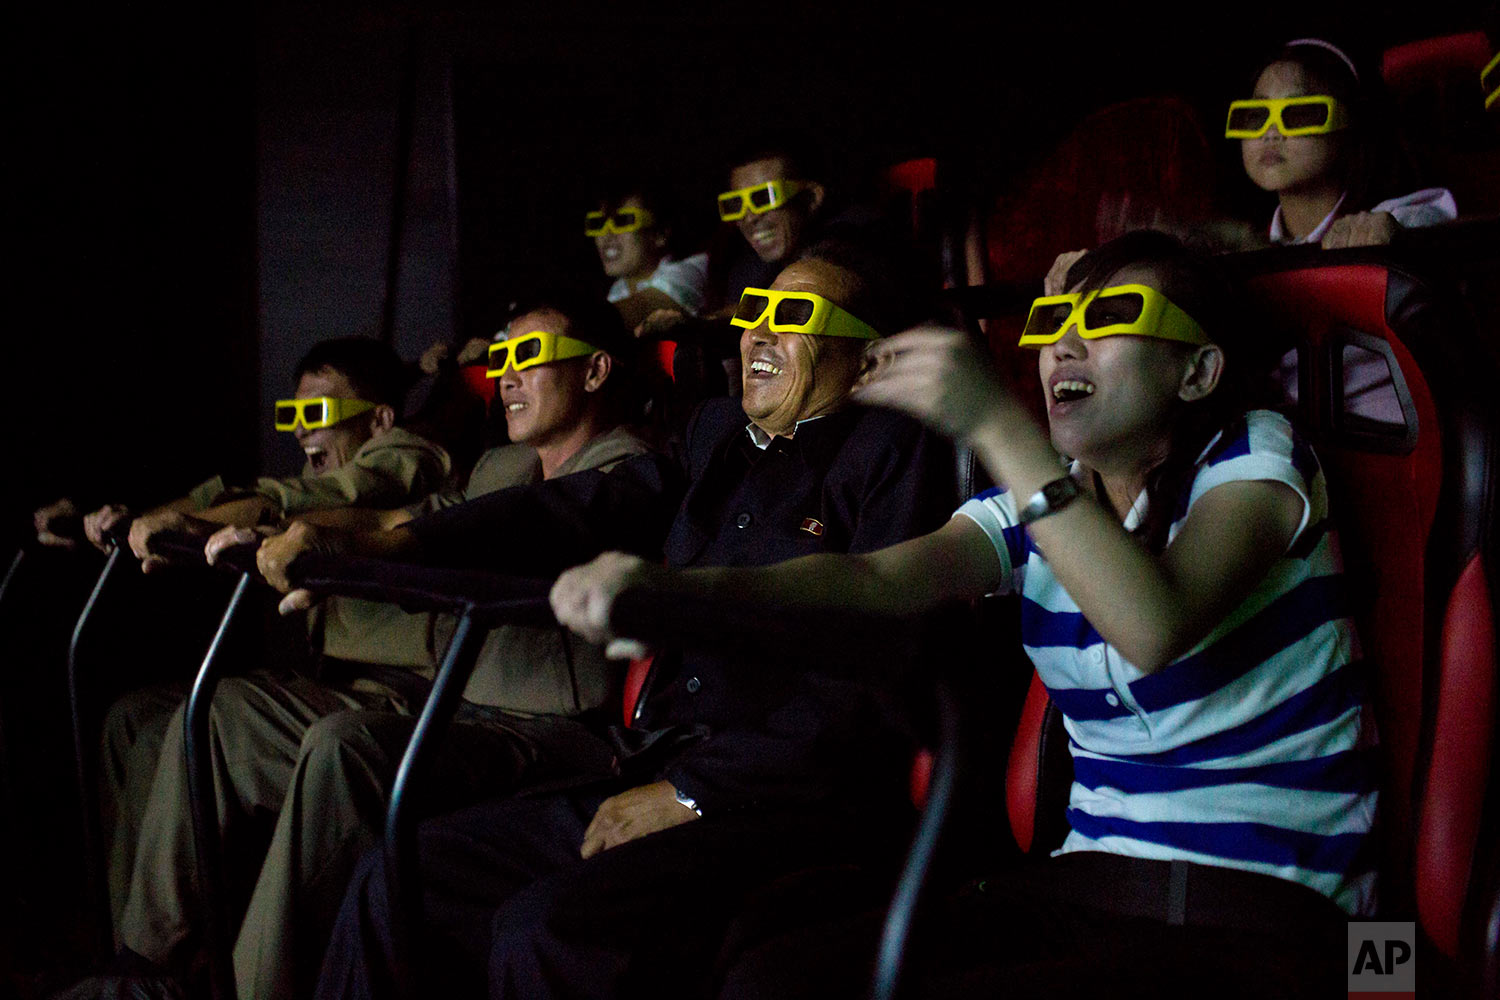 People watch a 3D movie on an amusement park ride at the Rungna People's Pleasure Park in Pyongyang, North Korea, on Sept. 22, 2013. (AP Photo/David Guttenfelder)